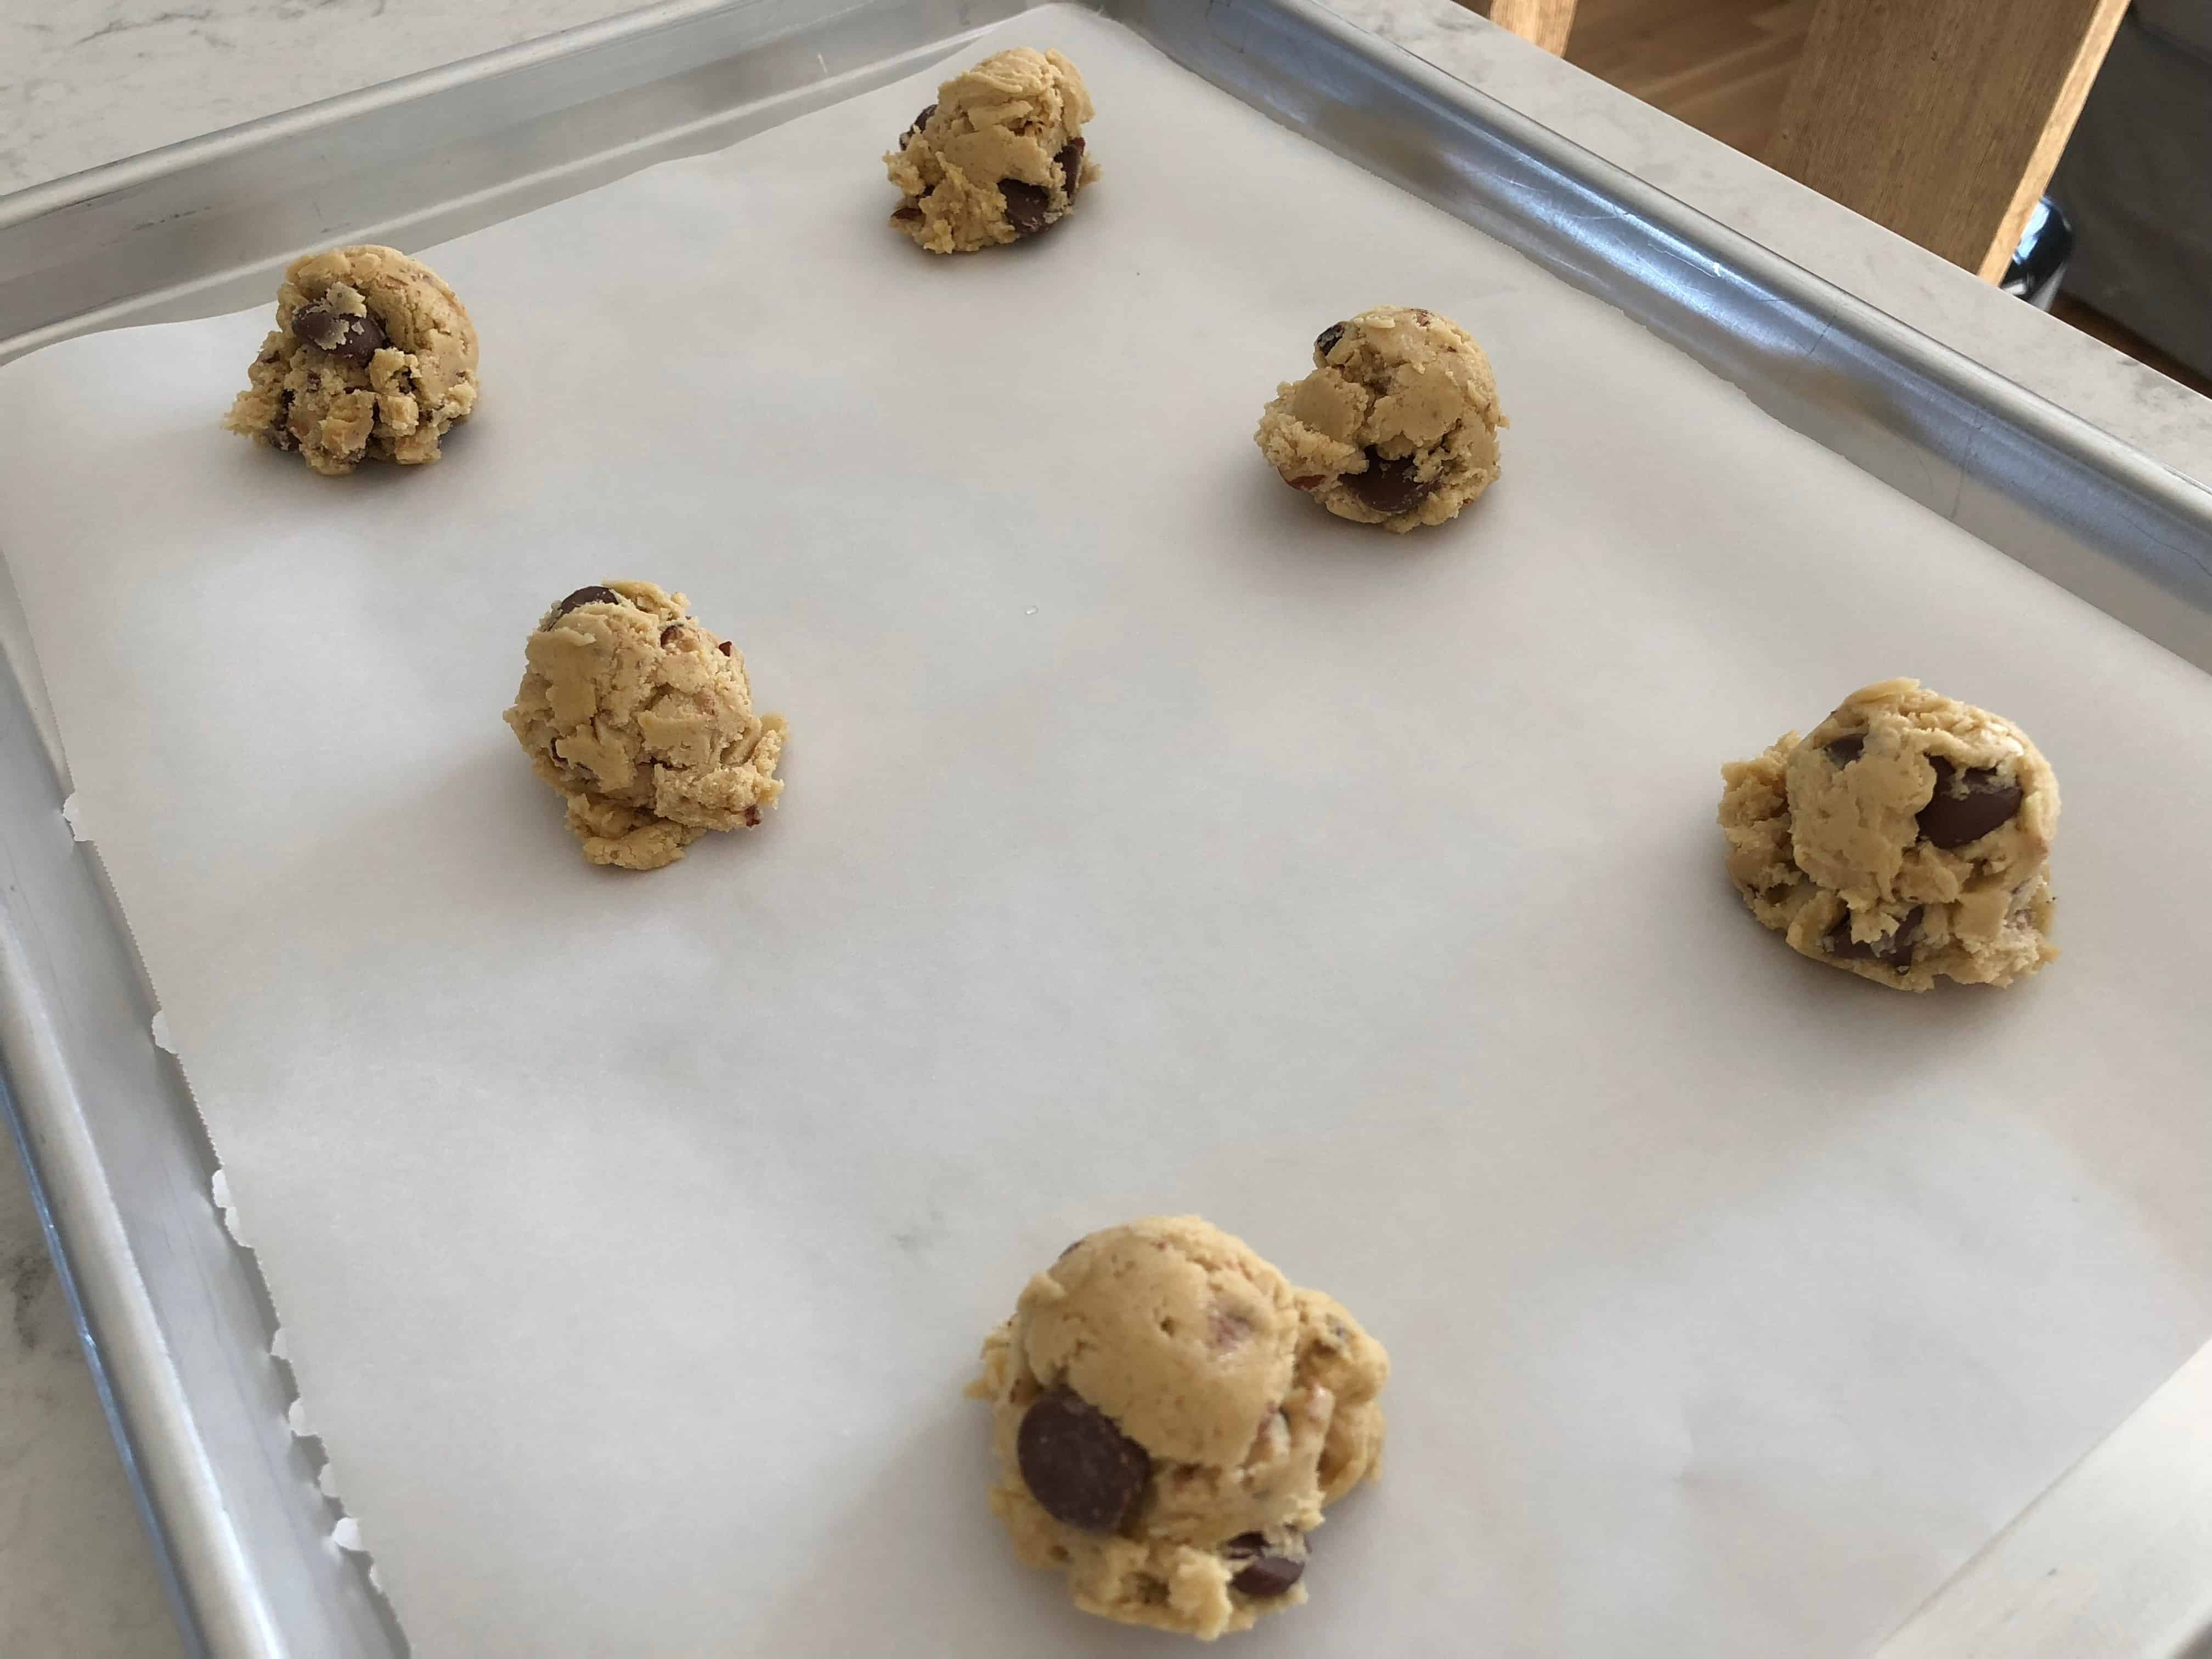 scoops of cookie dough on a pan